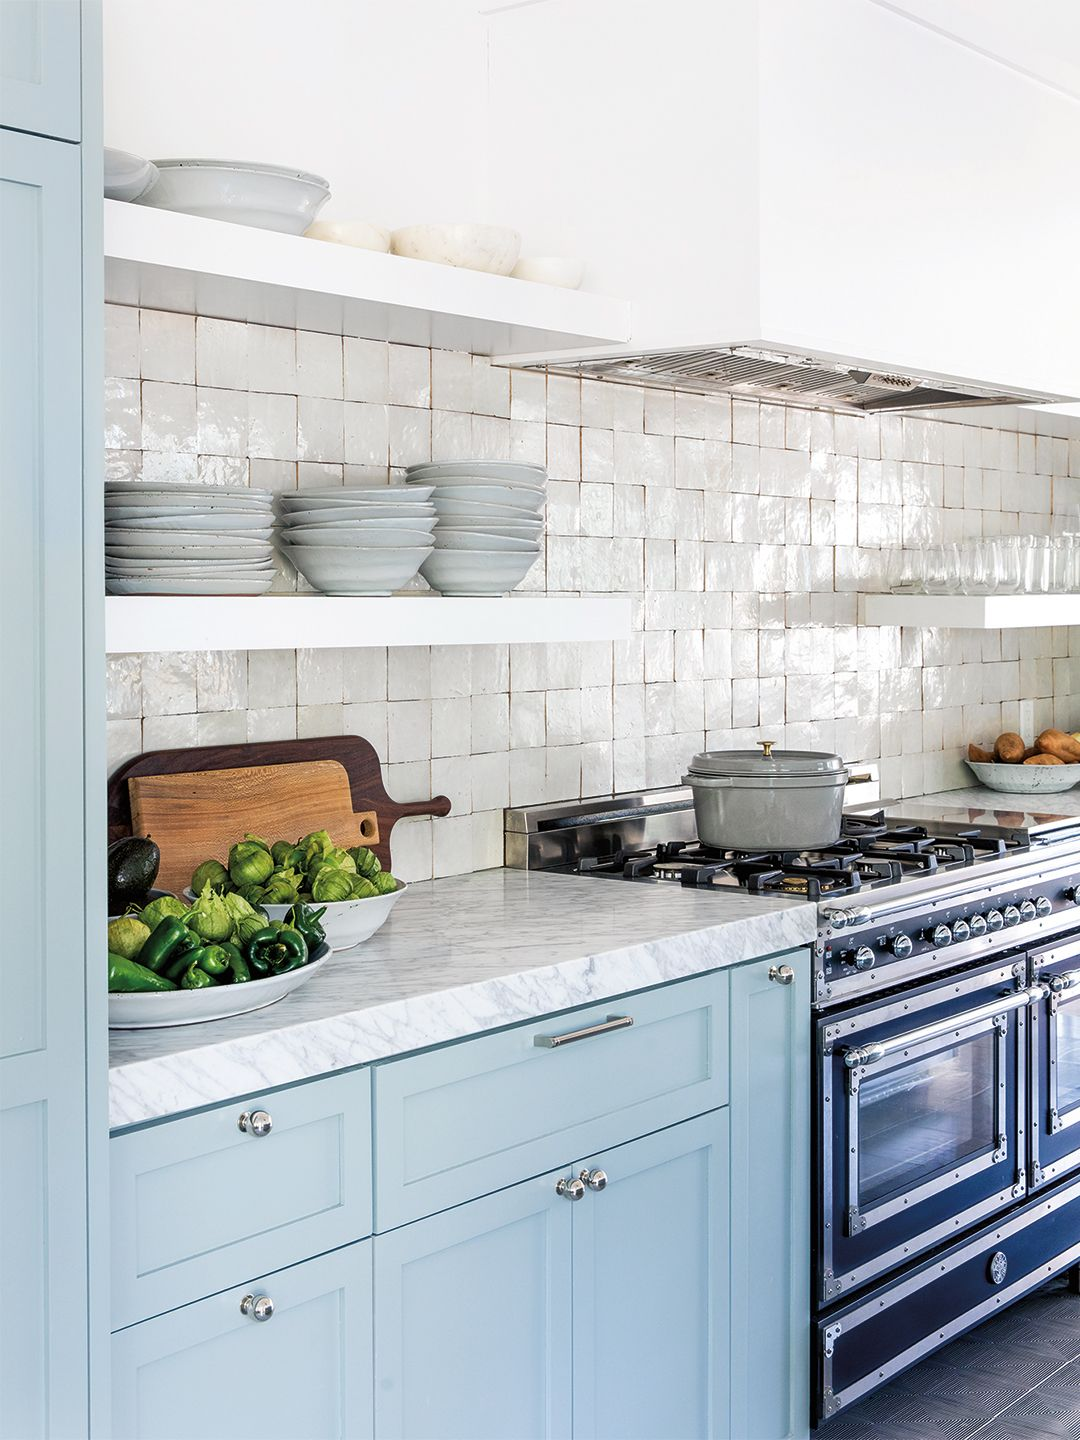 The Cost To Paint Kitchen Cabinets Explained In 2020 Cost Of Kitchen Cabinets Painting Kitchen Cabinets Kitchen Decor